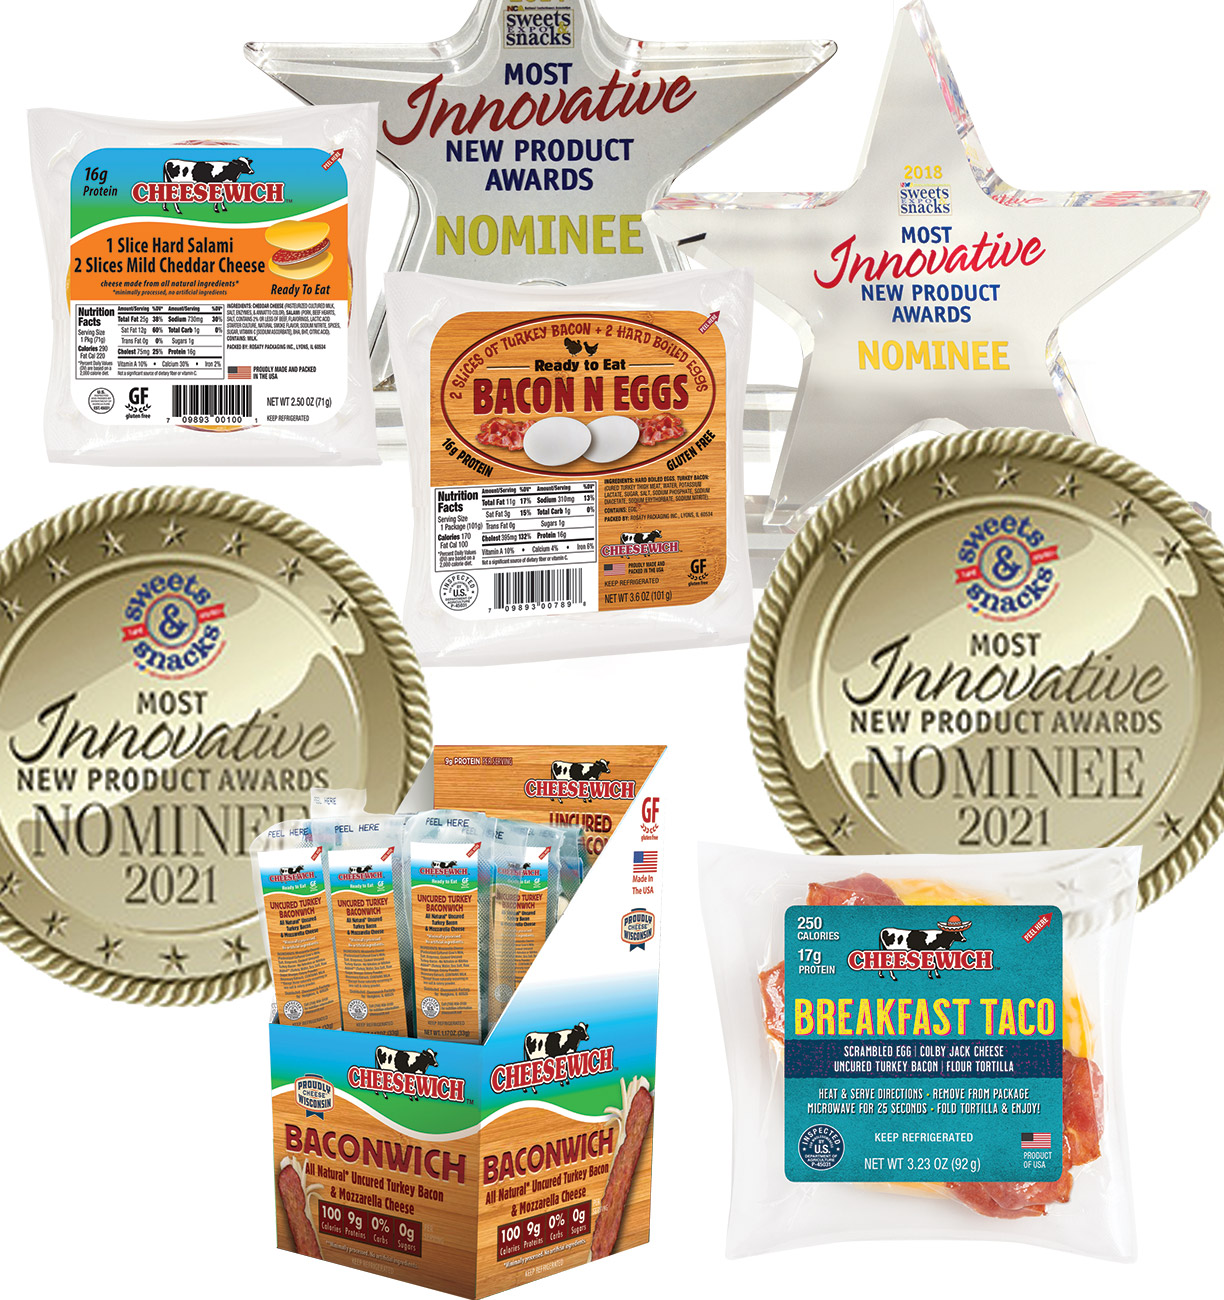 4 awards from Sweets & Snacks Expo, newest for Breakfast Taco and Baconwich 2021